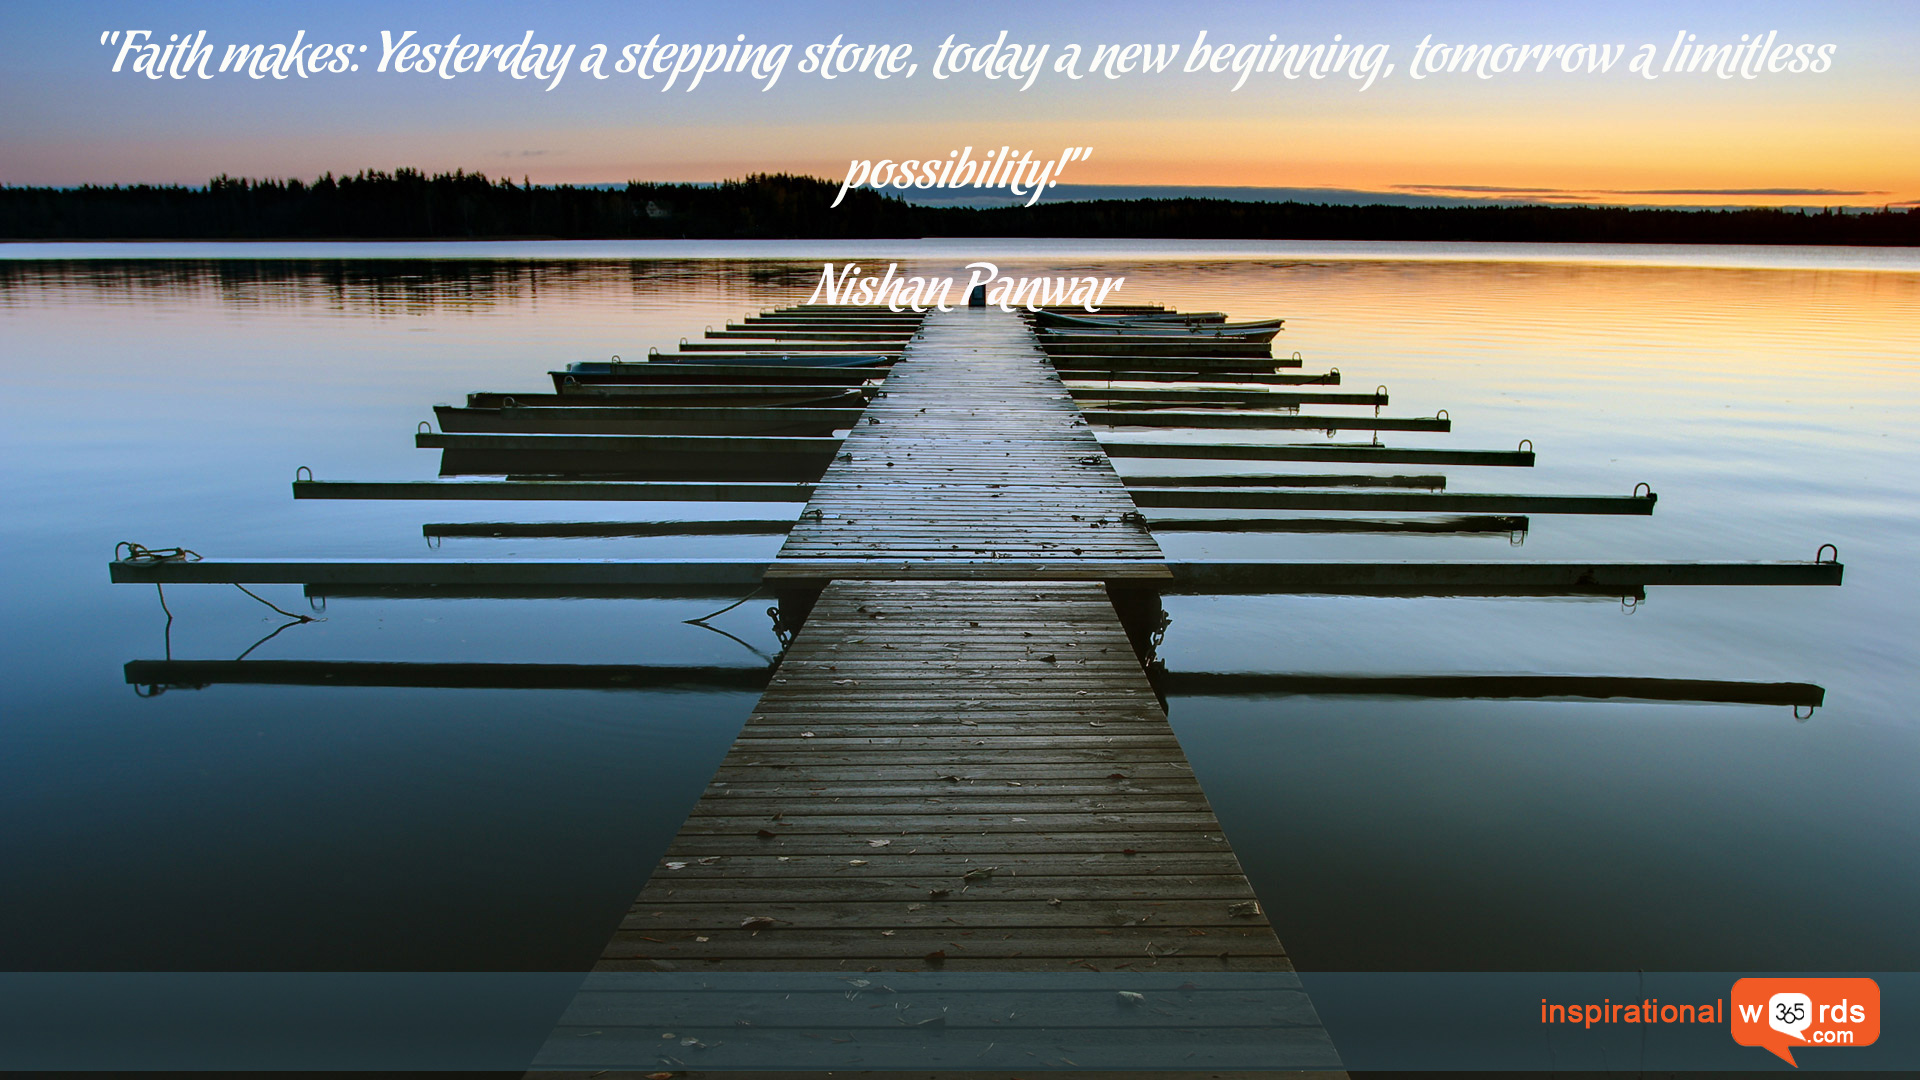 Inspirational Wallpaper Quote by Nishan Panwar